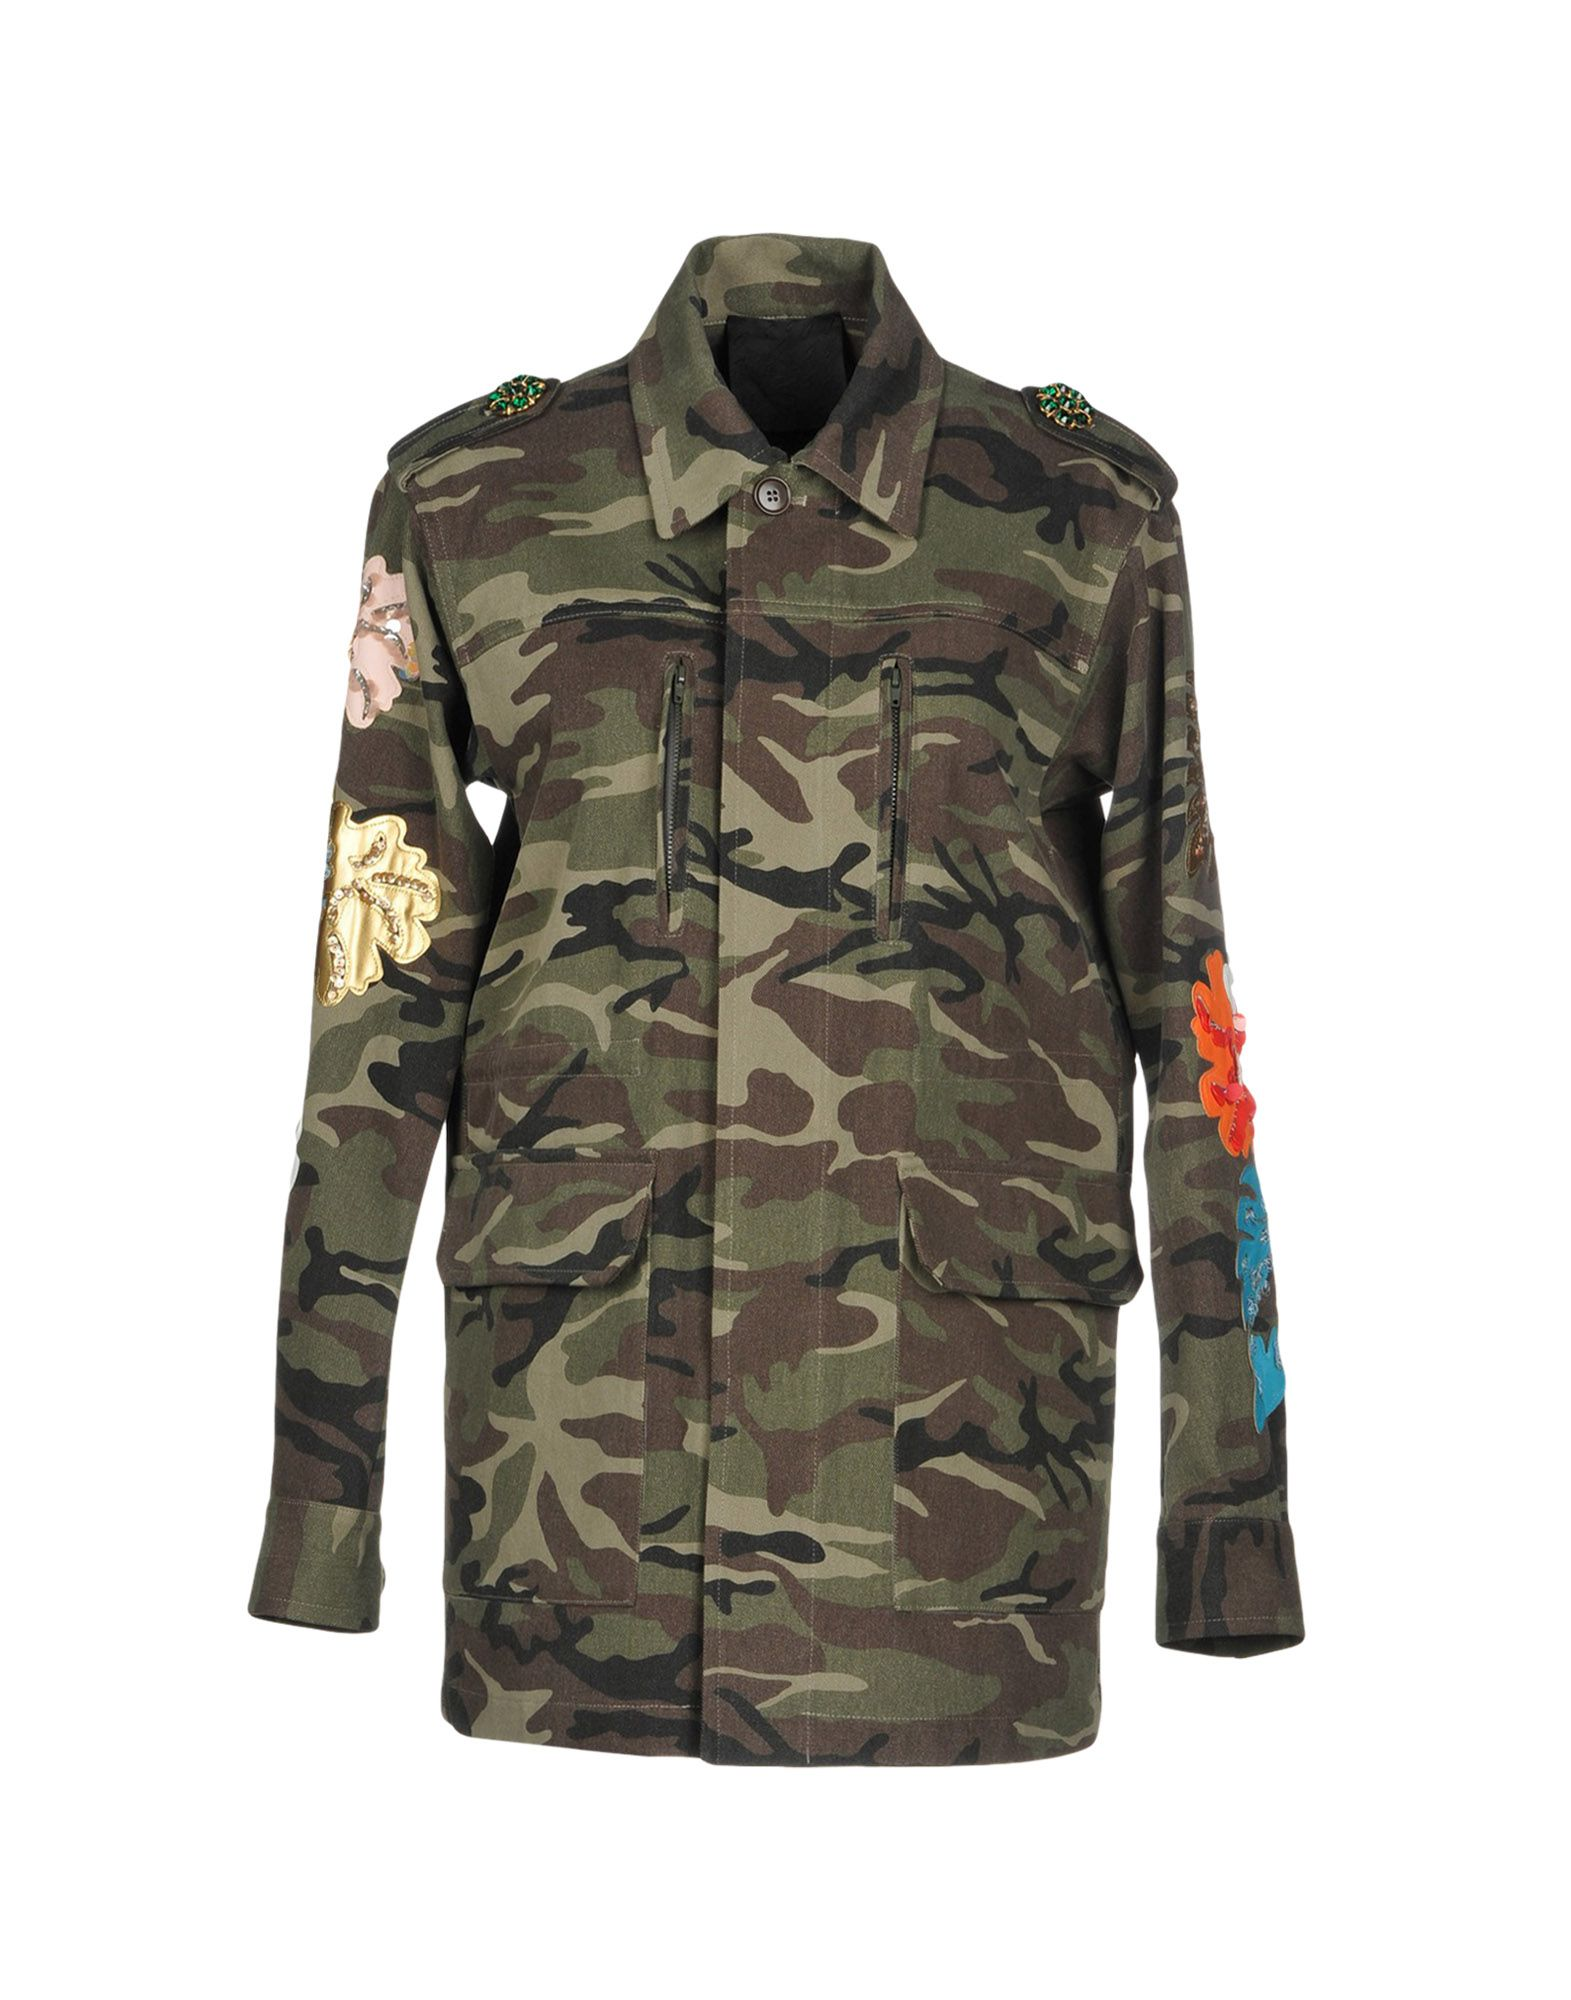 TIGER IN THE RAIN Jacket in Military Green